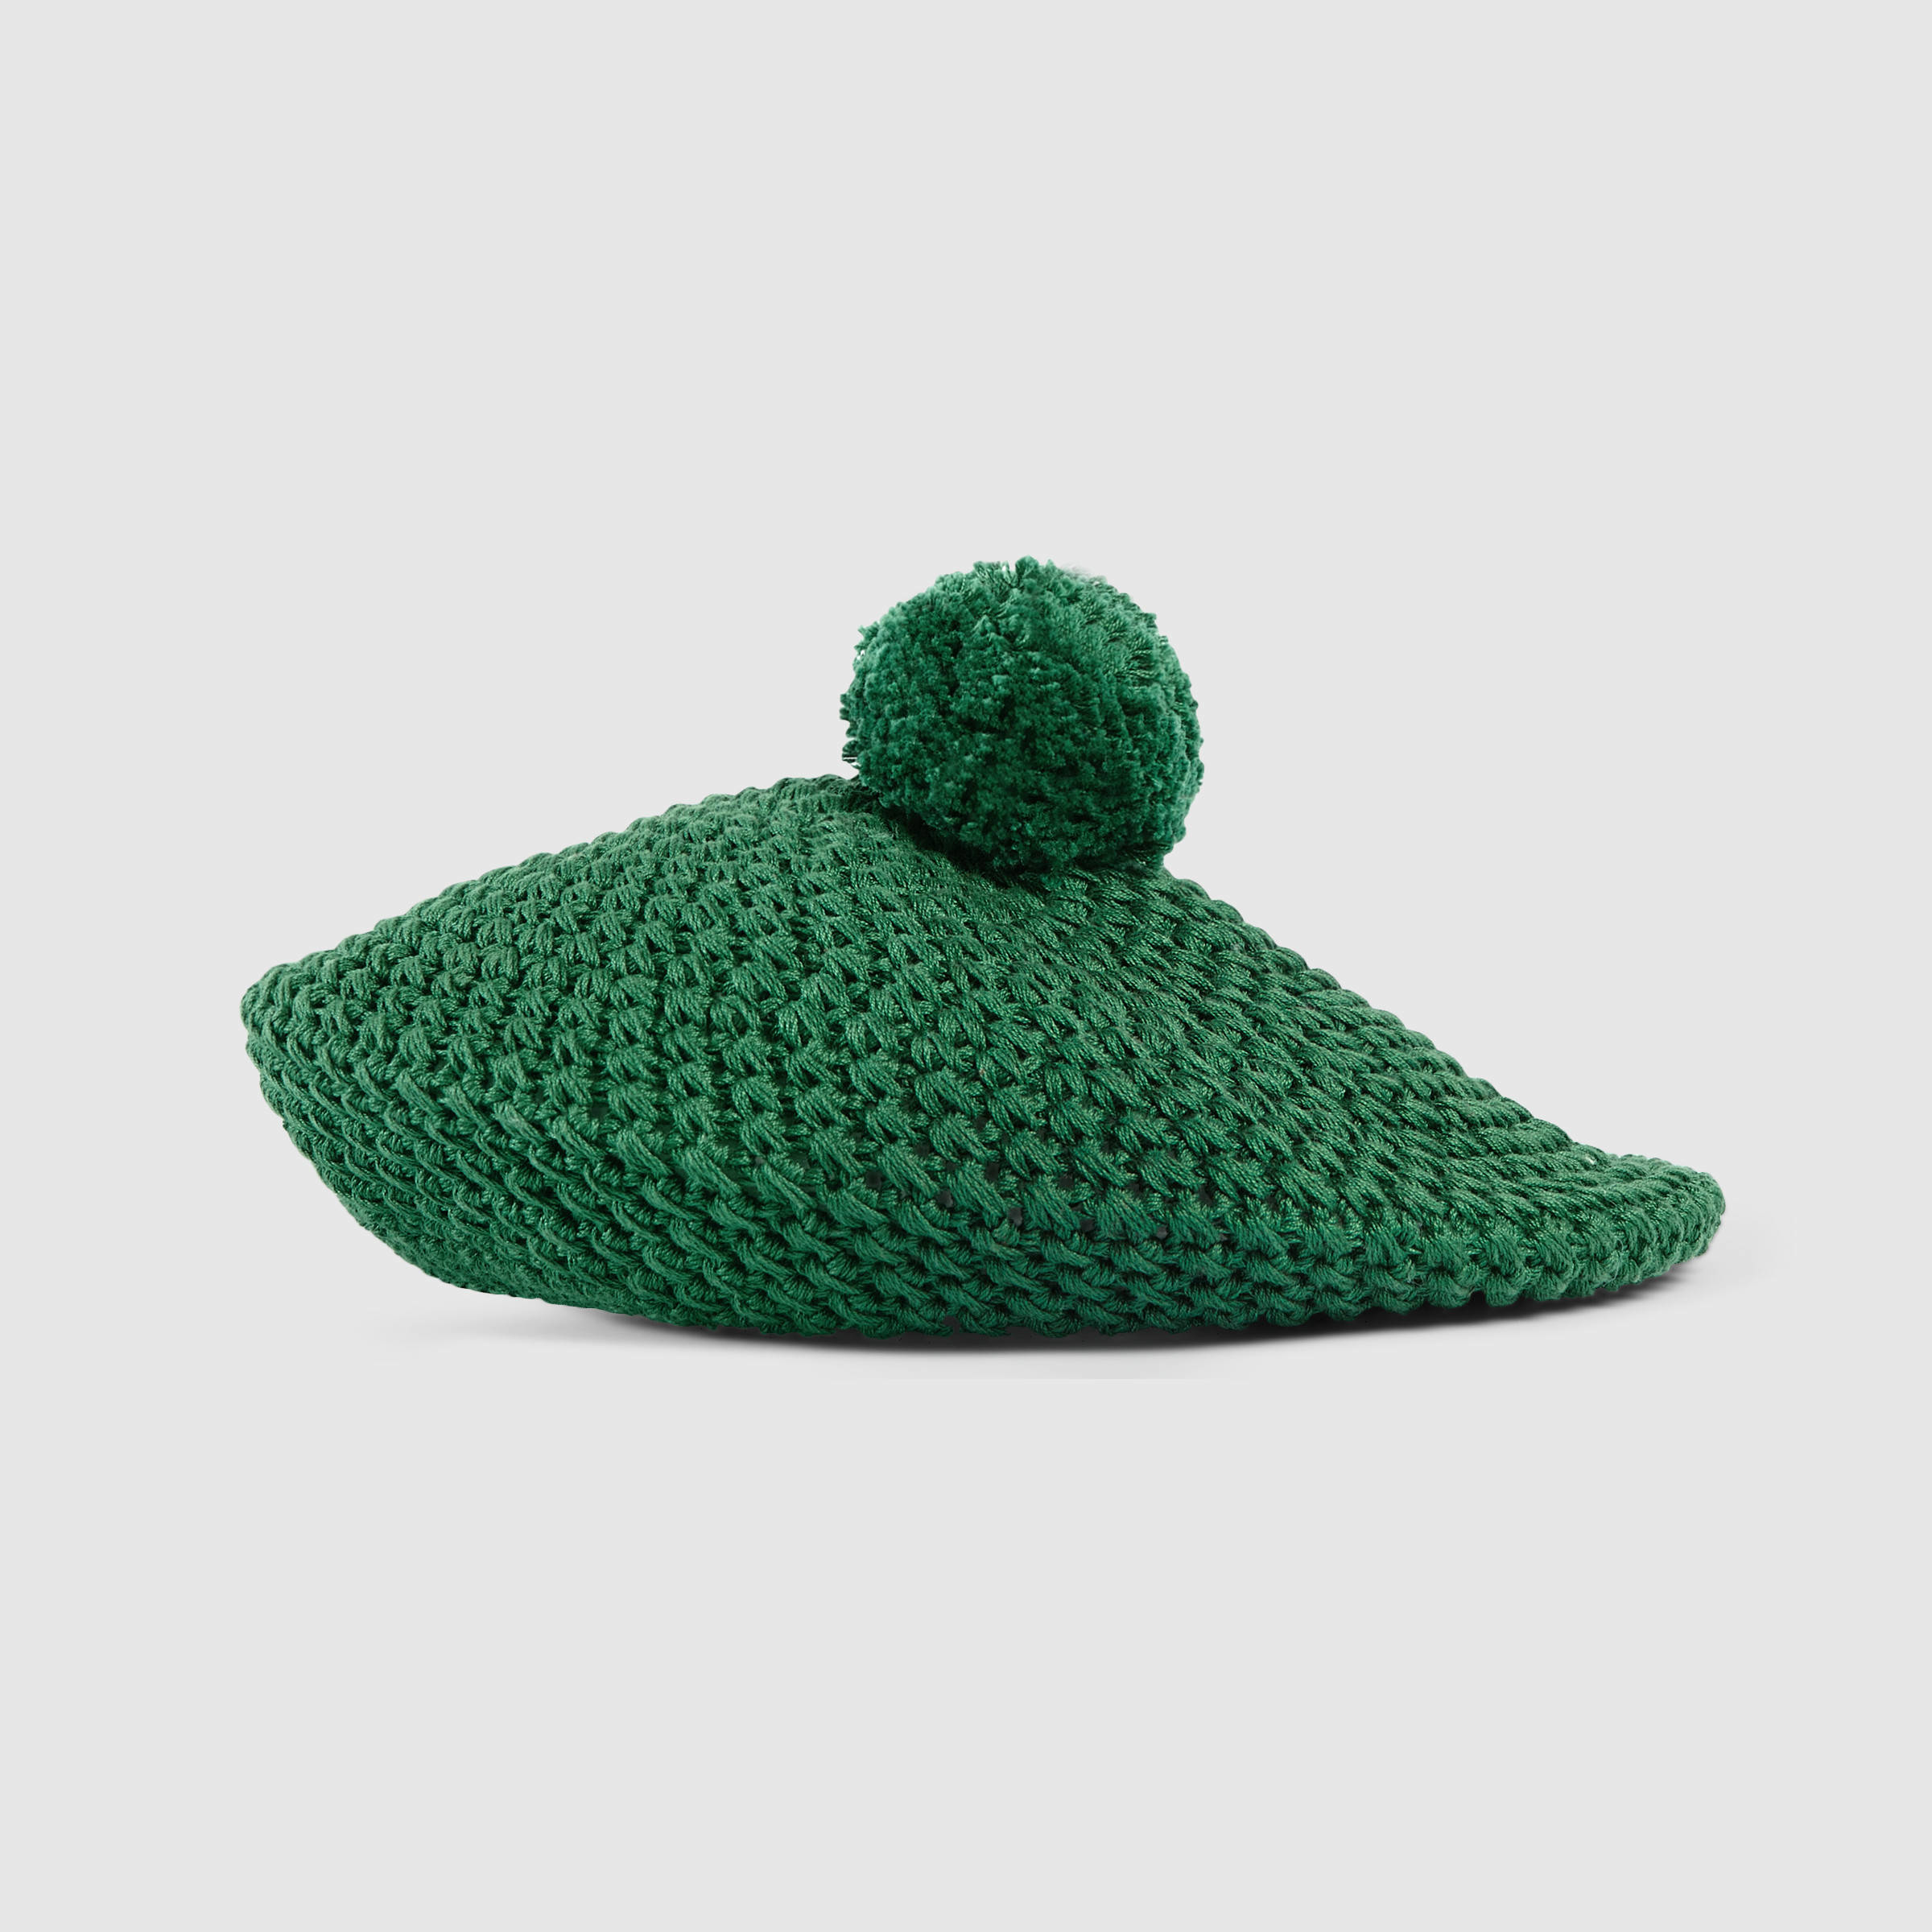 3756059b675 Lyst - Gucci Crocheted Cotton Beret in Green